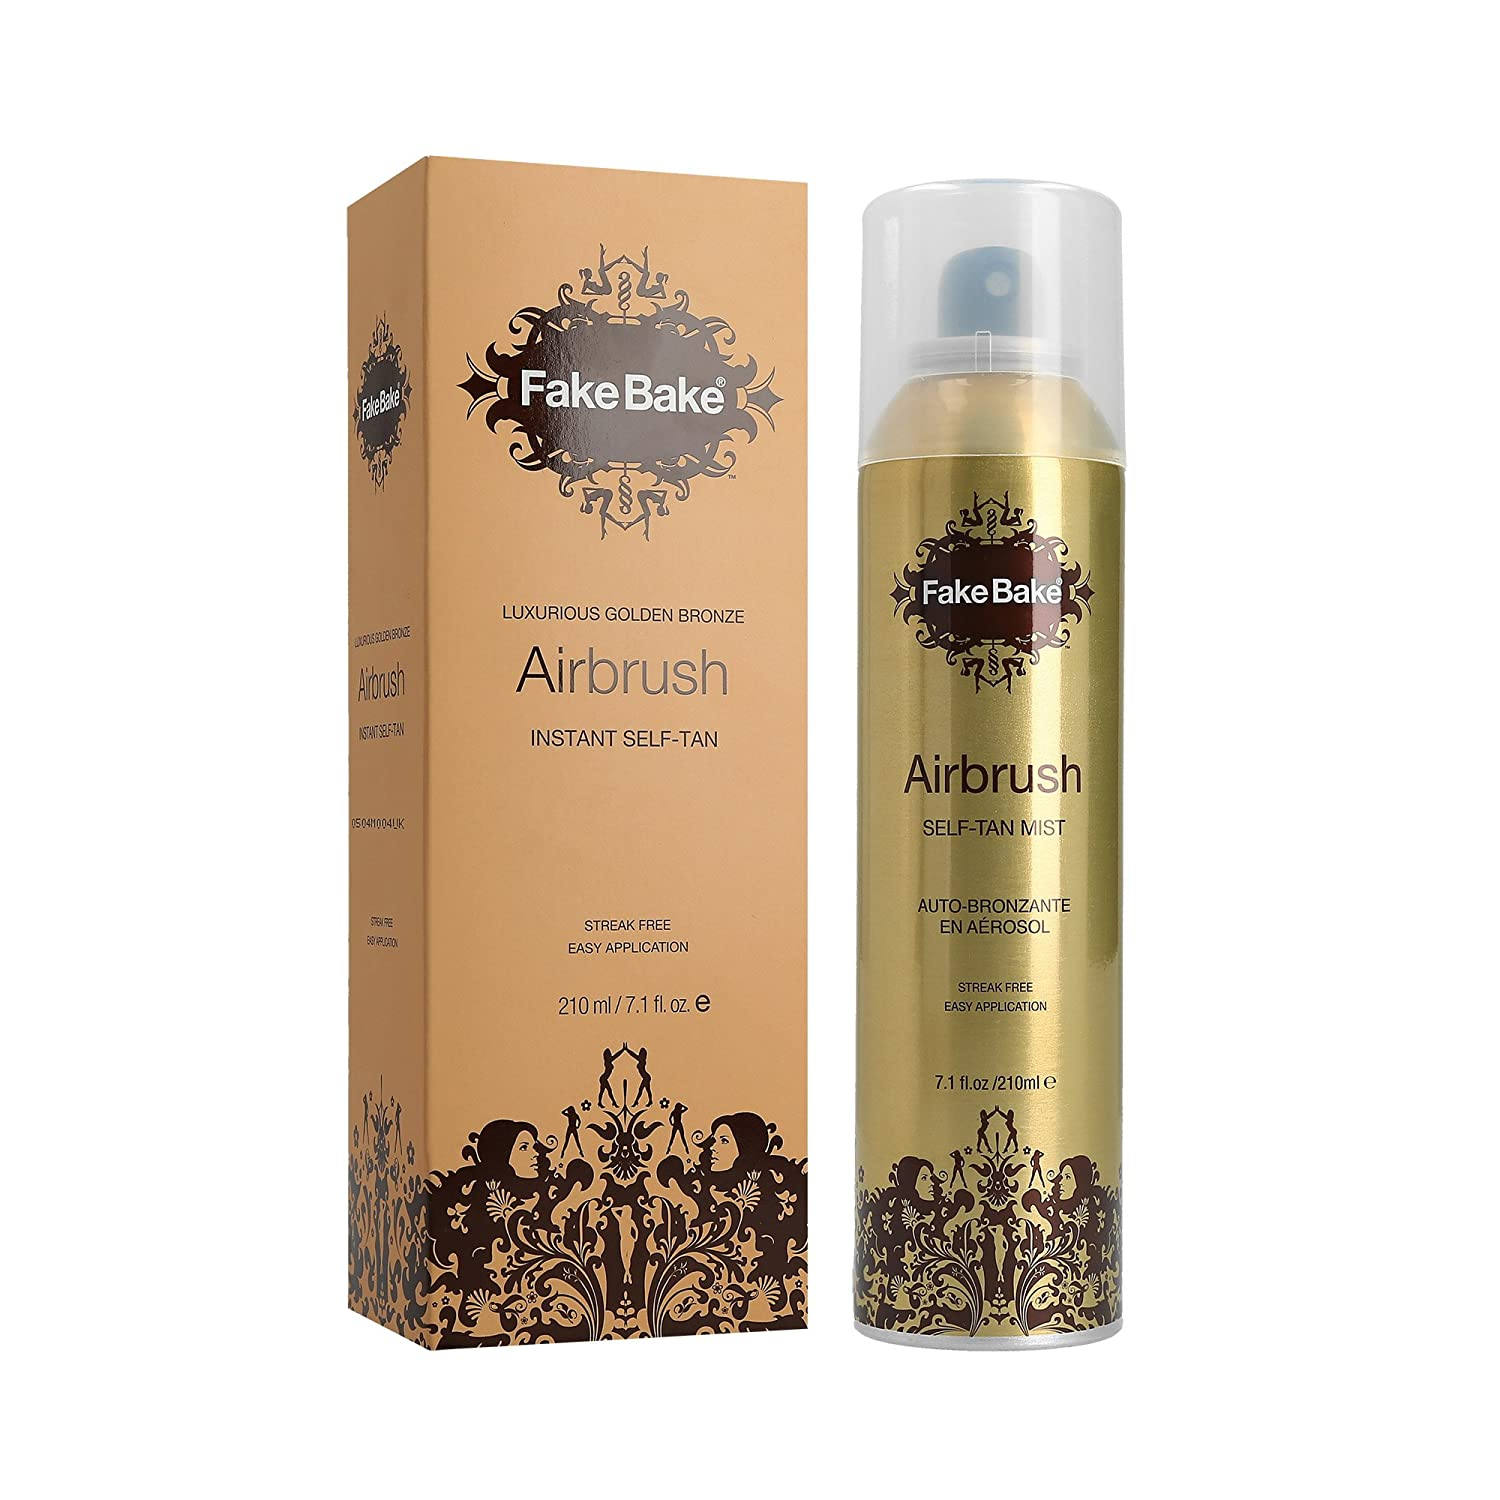 Instant Self Tanning Spray AirBrush by Fake Bake | Fast Drying Formula that Develops the Perfect Golden Bronze Tan in Few Hours | Refined 360˚ Nozzle Gives a Continuous Spray at Any Angle | 7.1 fl oz FBA12